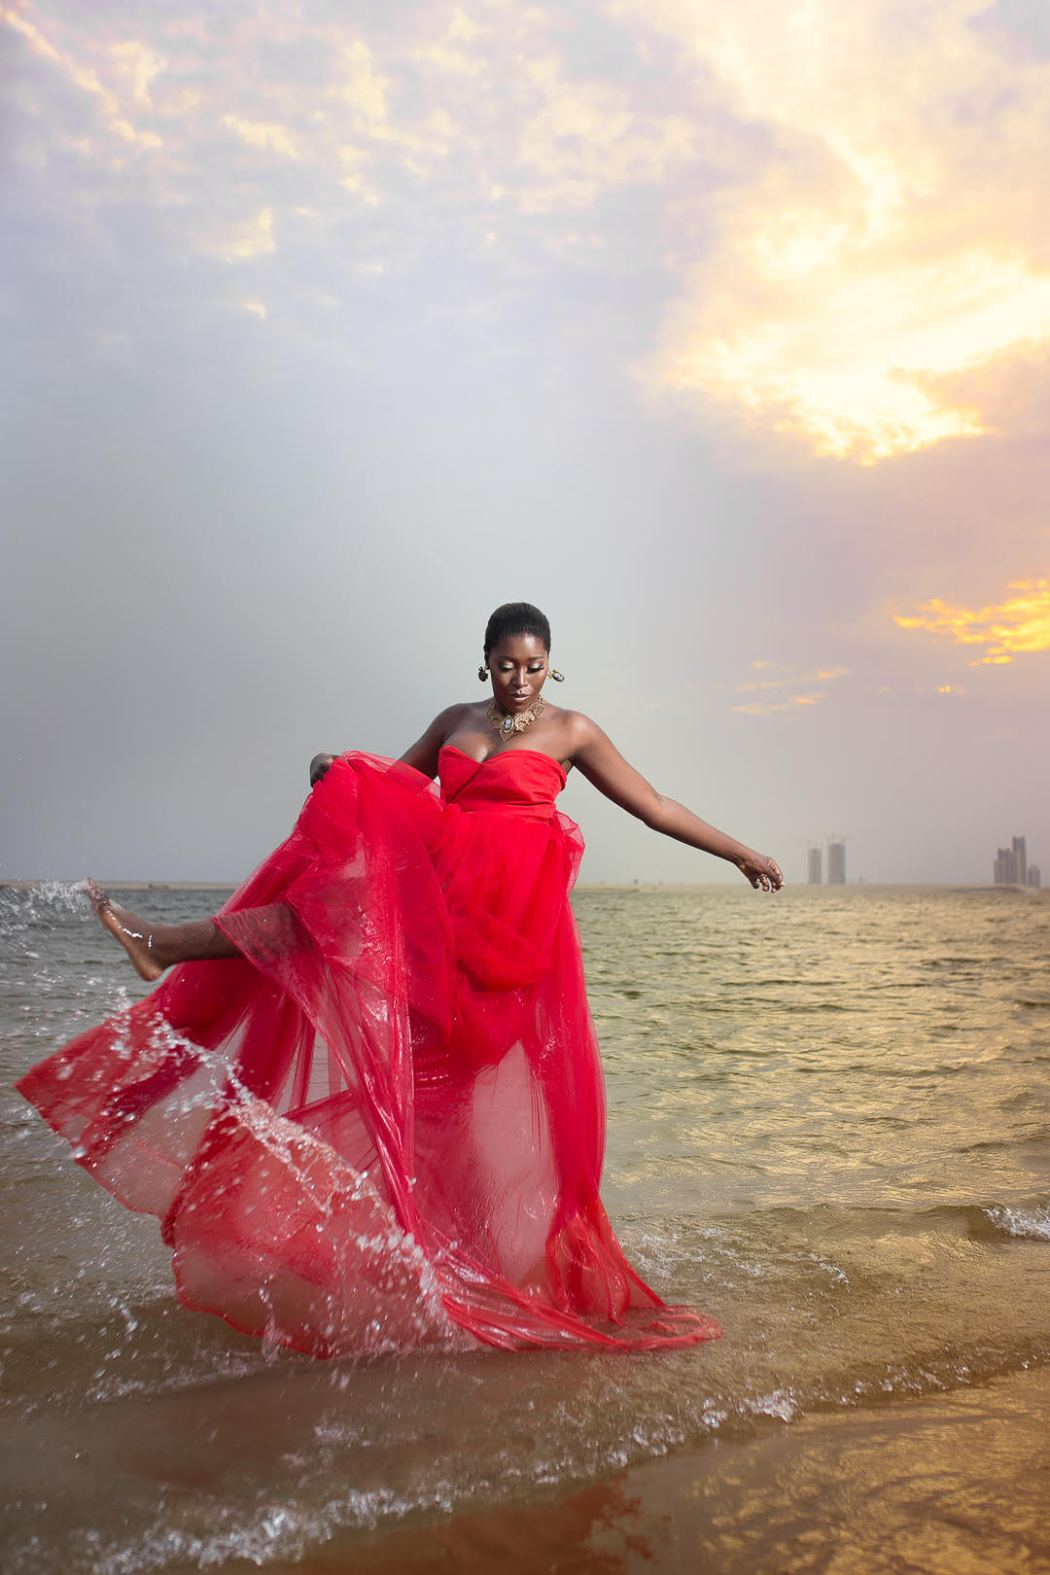 Vimbai 6 - Media girl Vimbai Mutinhiri releases stunning new birthday photos